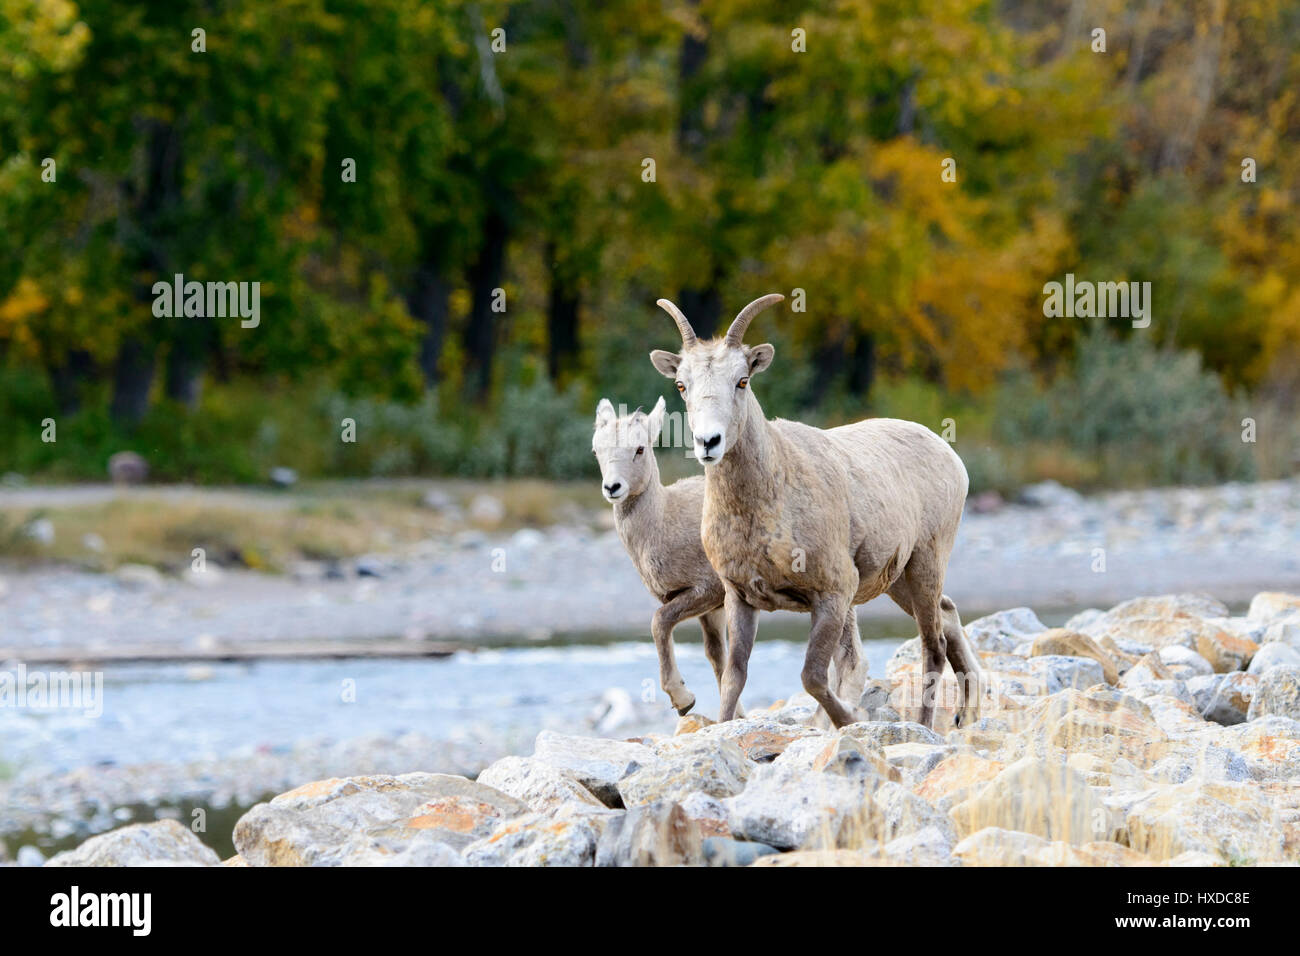 A Bighorn ewe (Ovis canadensis) and her lamb walk along a creek in Autumn, North America - Stock Image